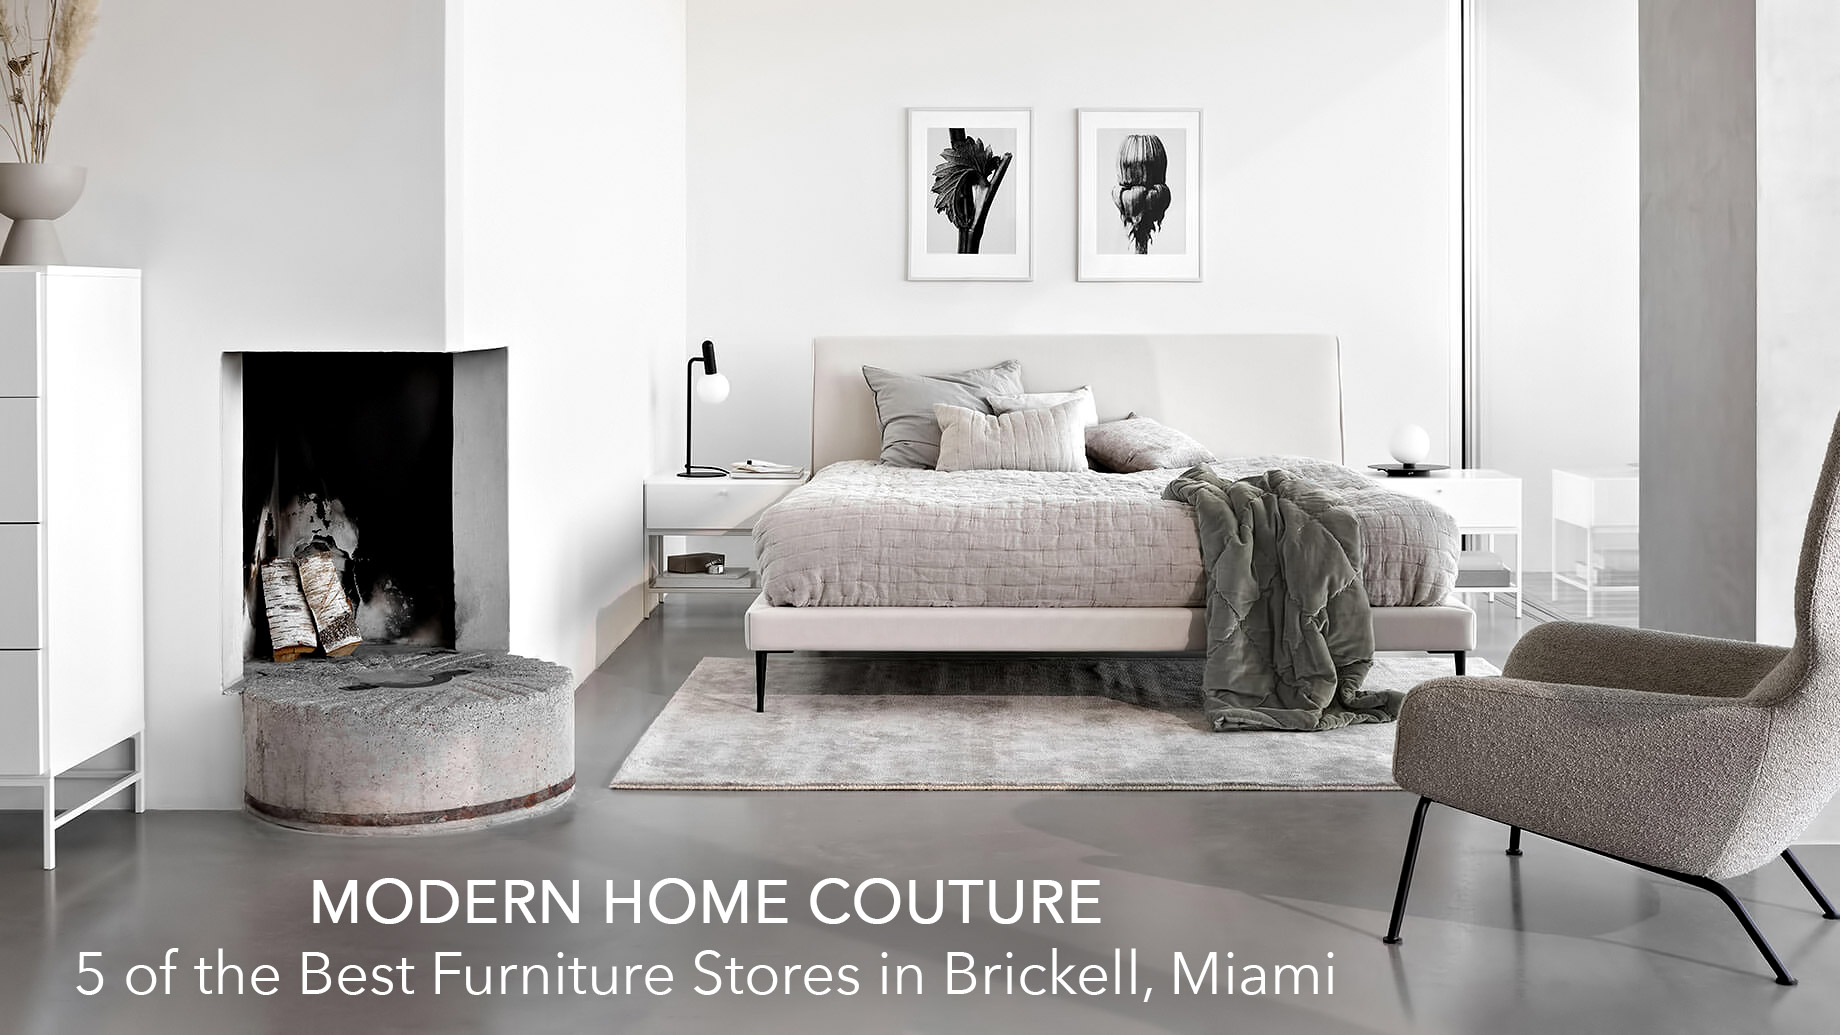 Modern Home Couture - 5 of the Best Furniture Stores in Brickell, Miami